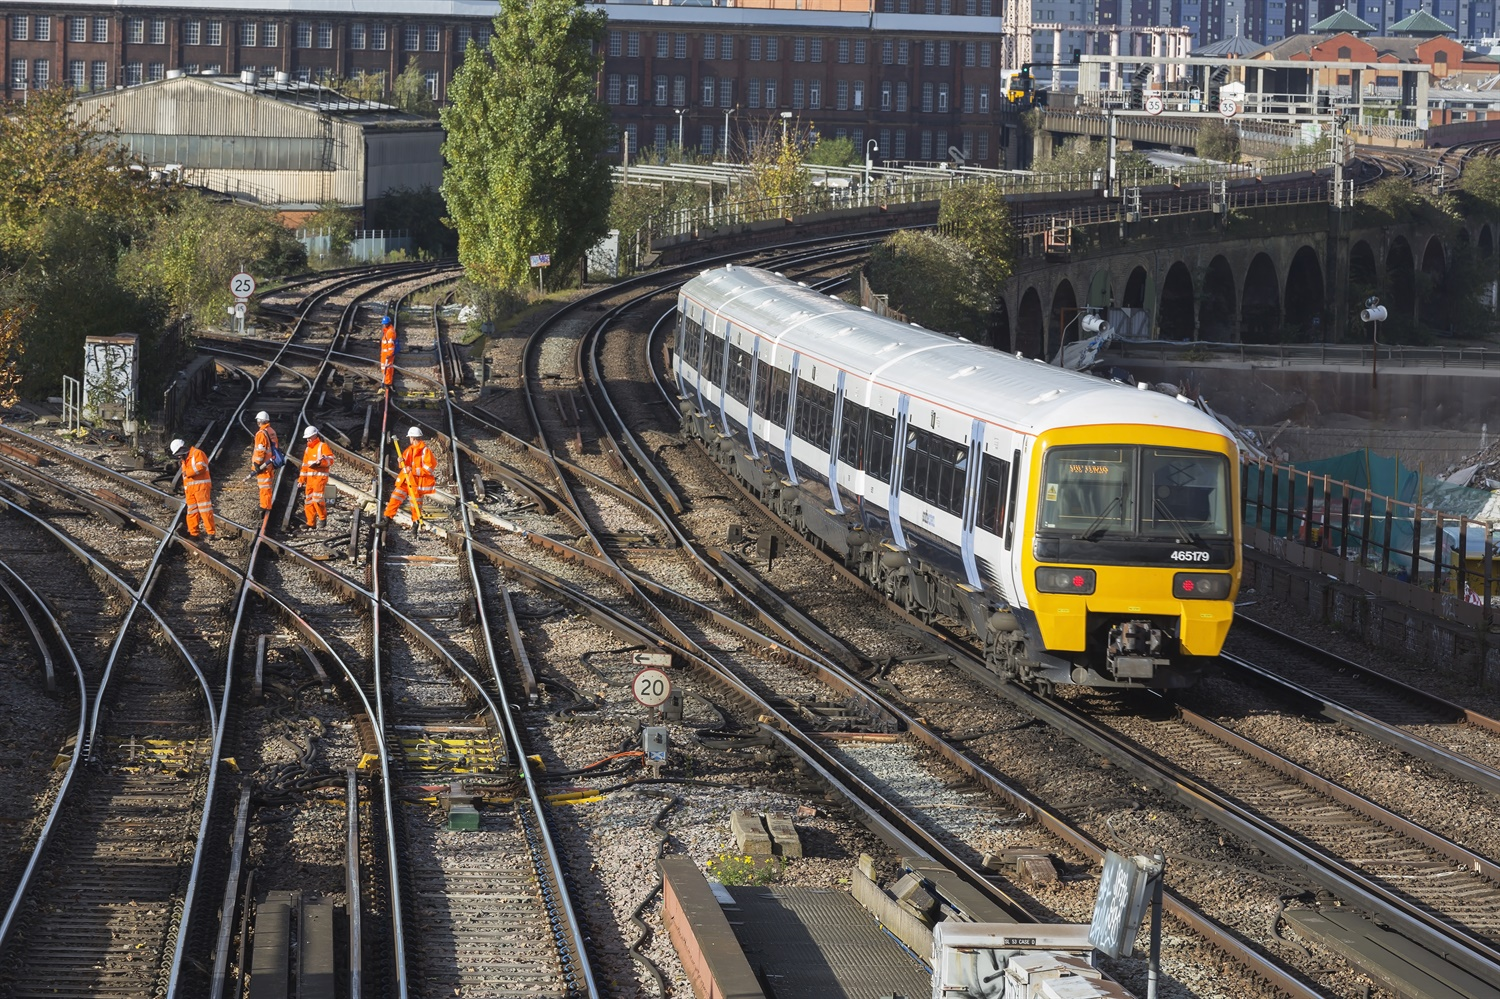 Train's near miss with track workers caused by mix-up over location